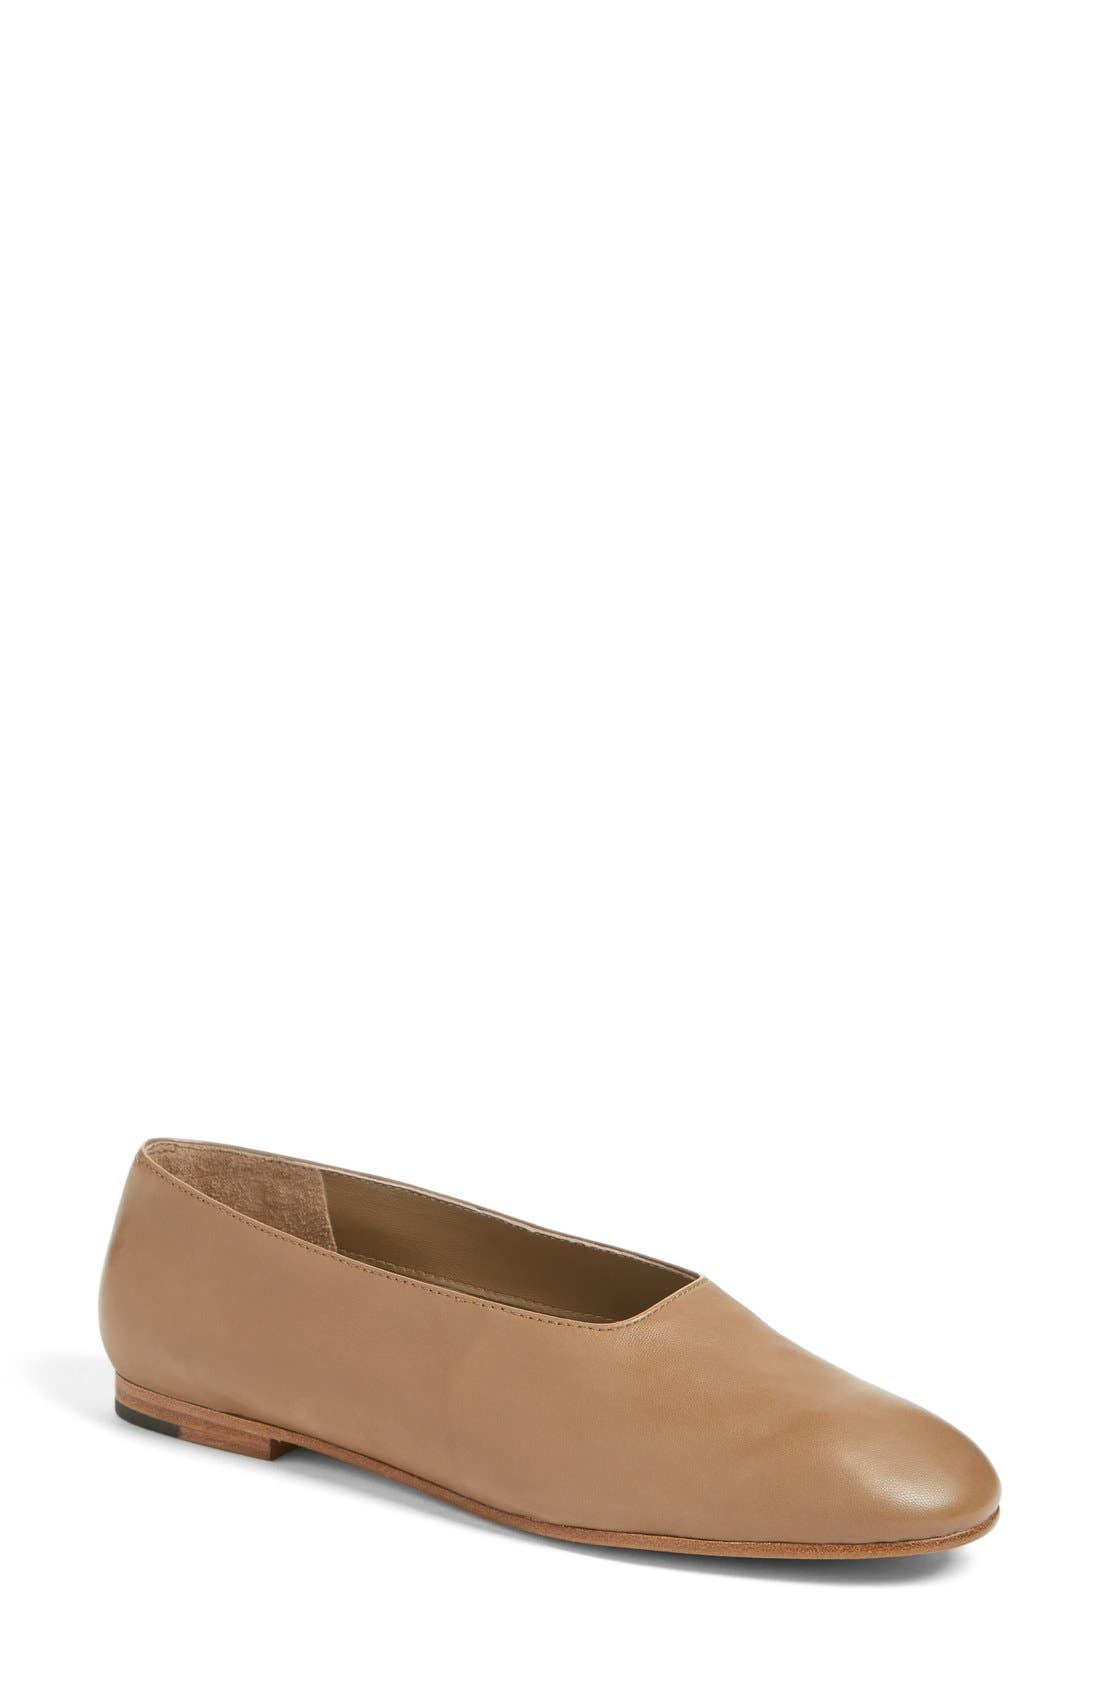 'Maxwell' Flat,                         Main,                         color, Dark Taupe Leather